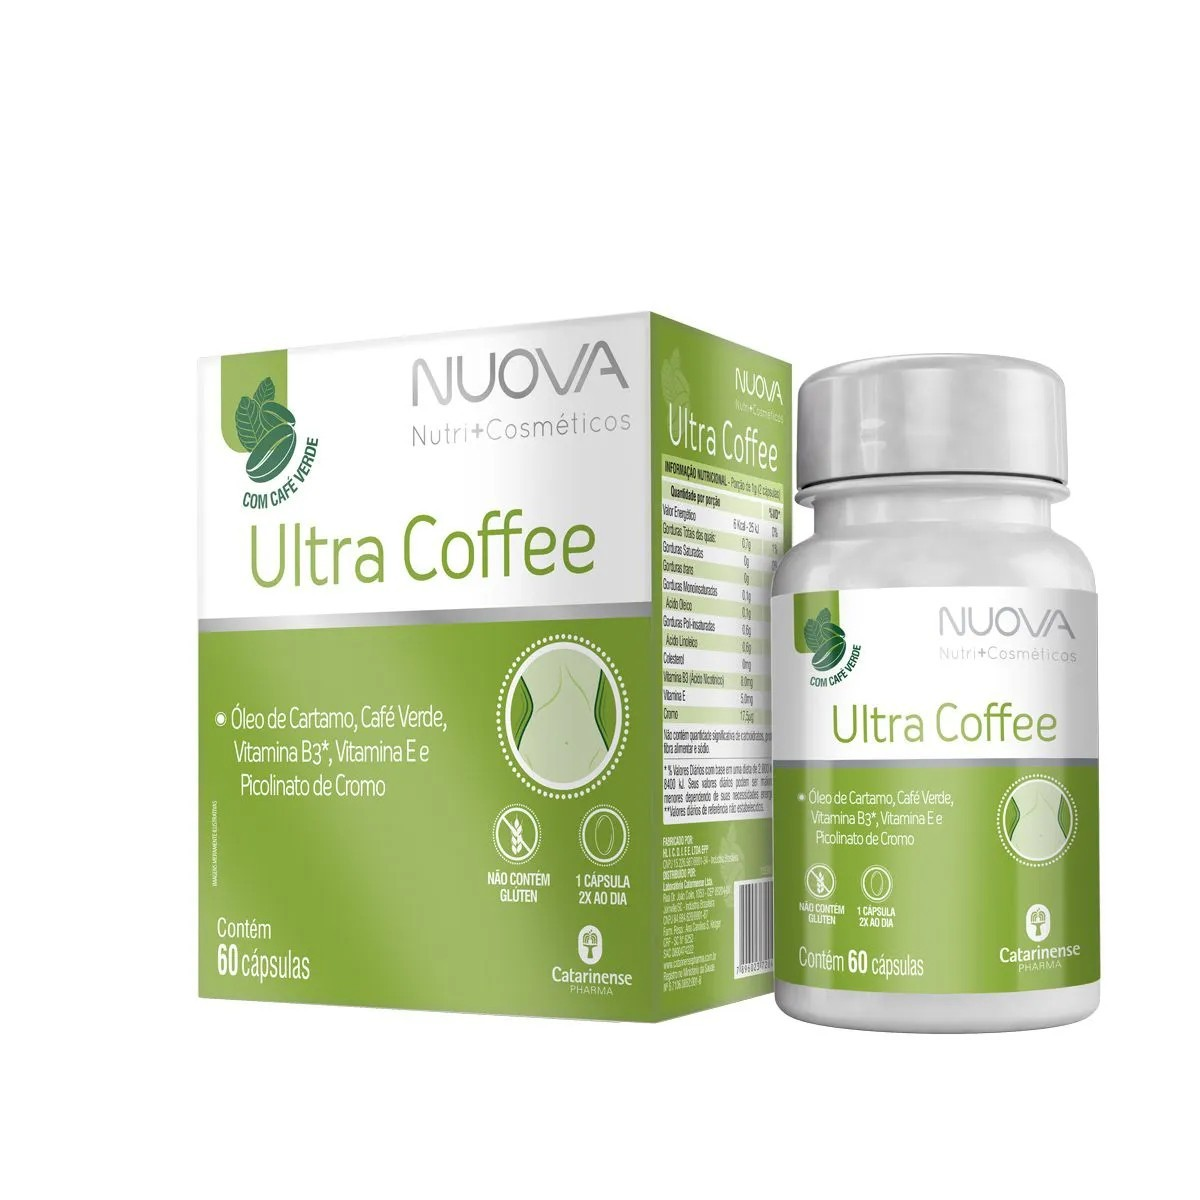 Nuova Ultra Coffee Nuova 60 cápsulas - Catarinense